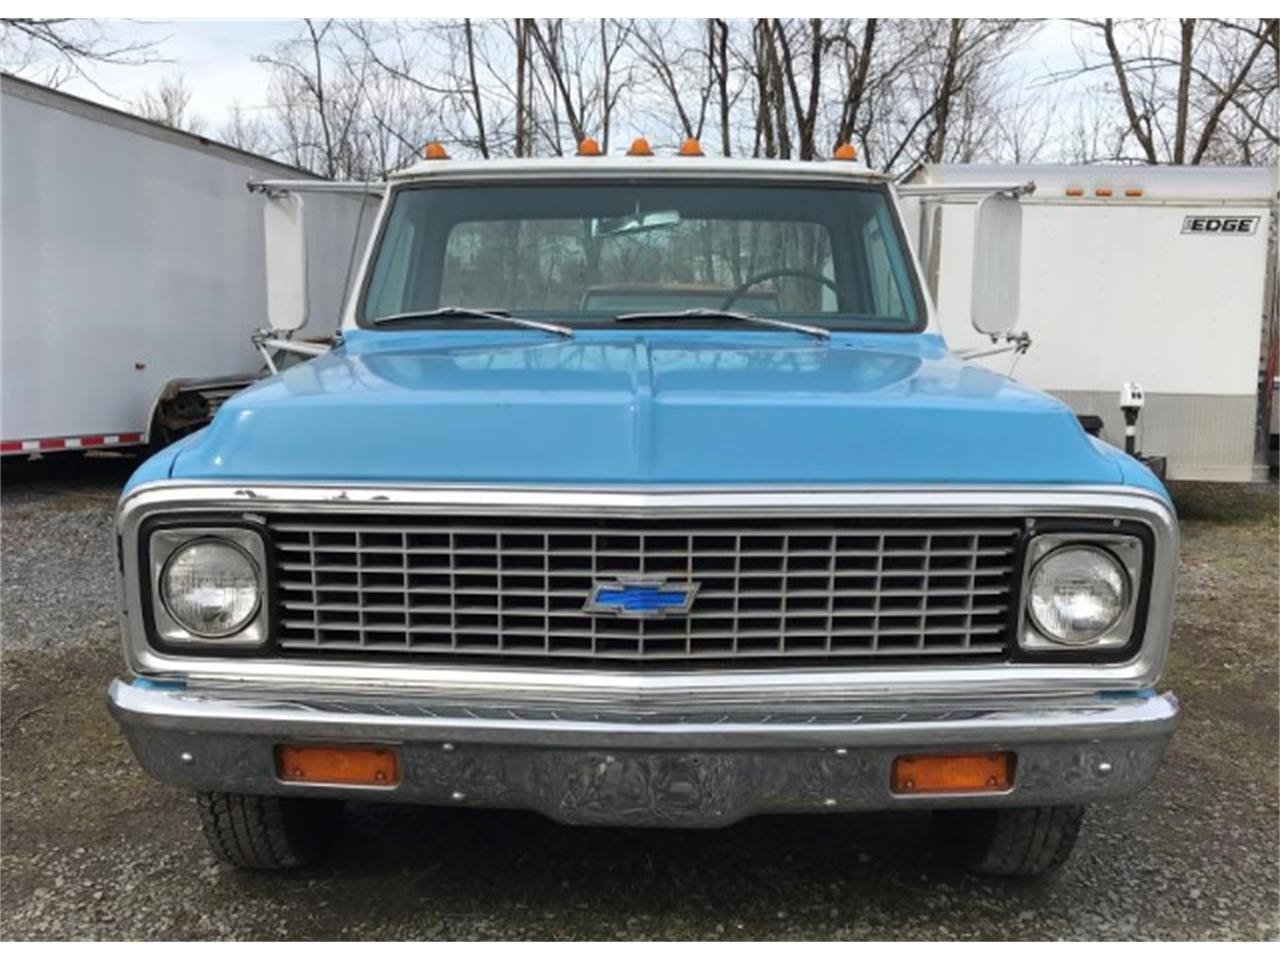 Large Picture of 1971 Chevrolet 1 Ton Truck located in West Virginia - $7,900.00 - OLMB